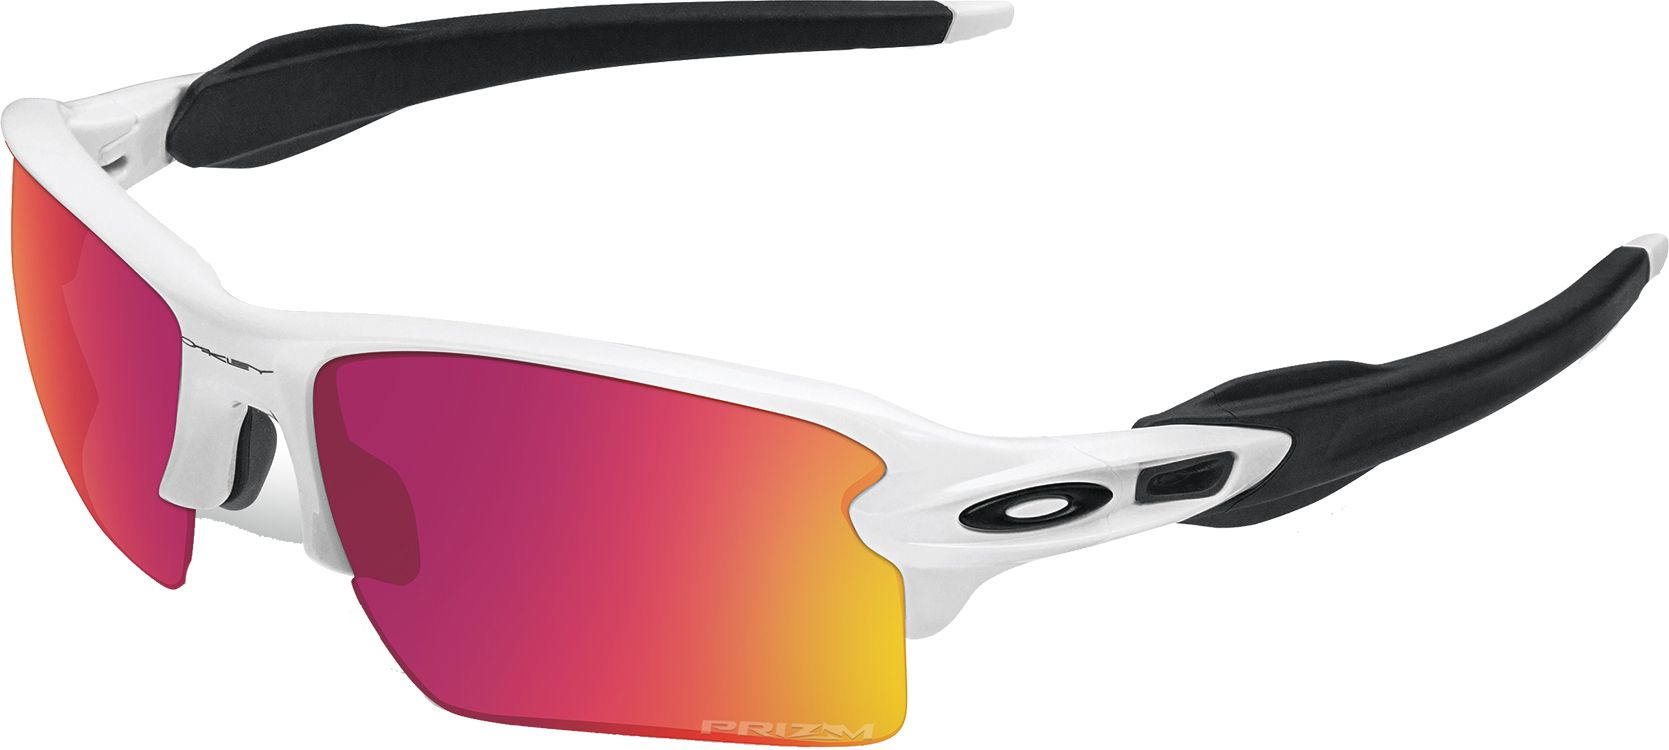 oakley gascan lense replacement qc4g  Product Image Oakley Flak 20 XL Baseball Sunglasses